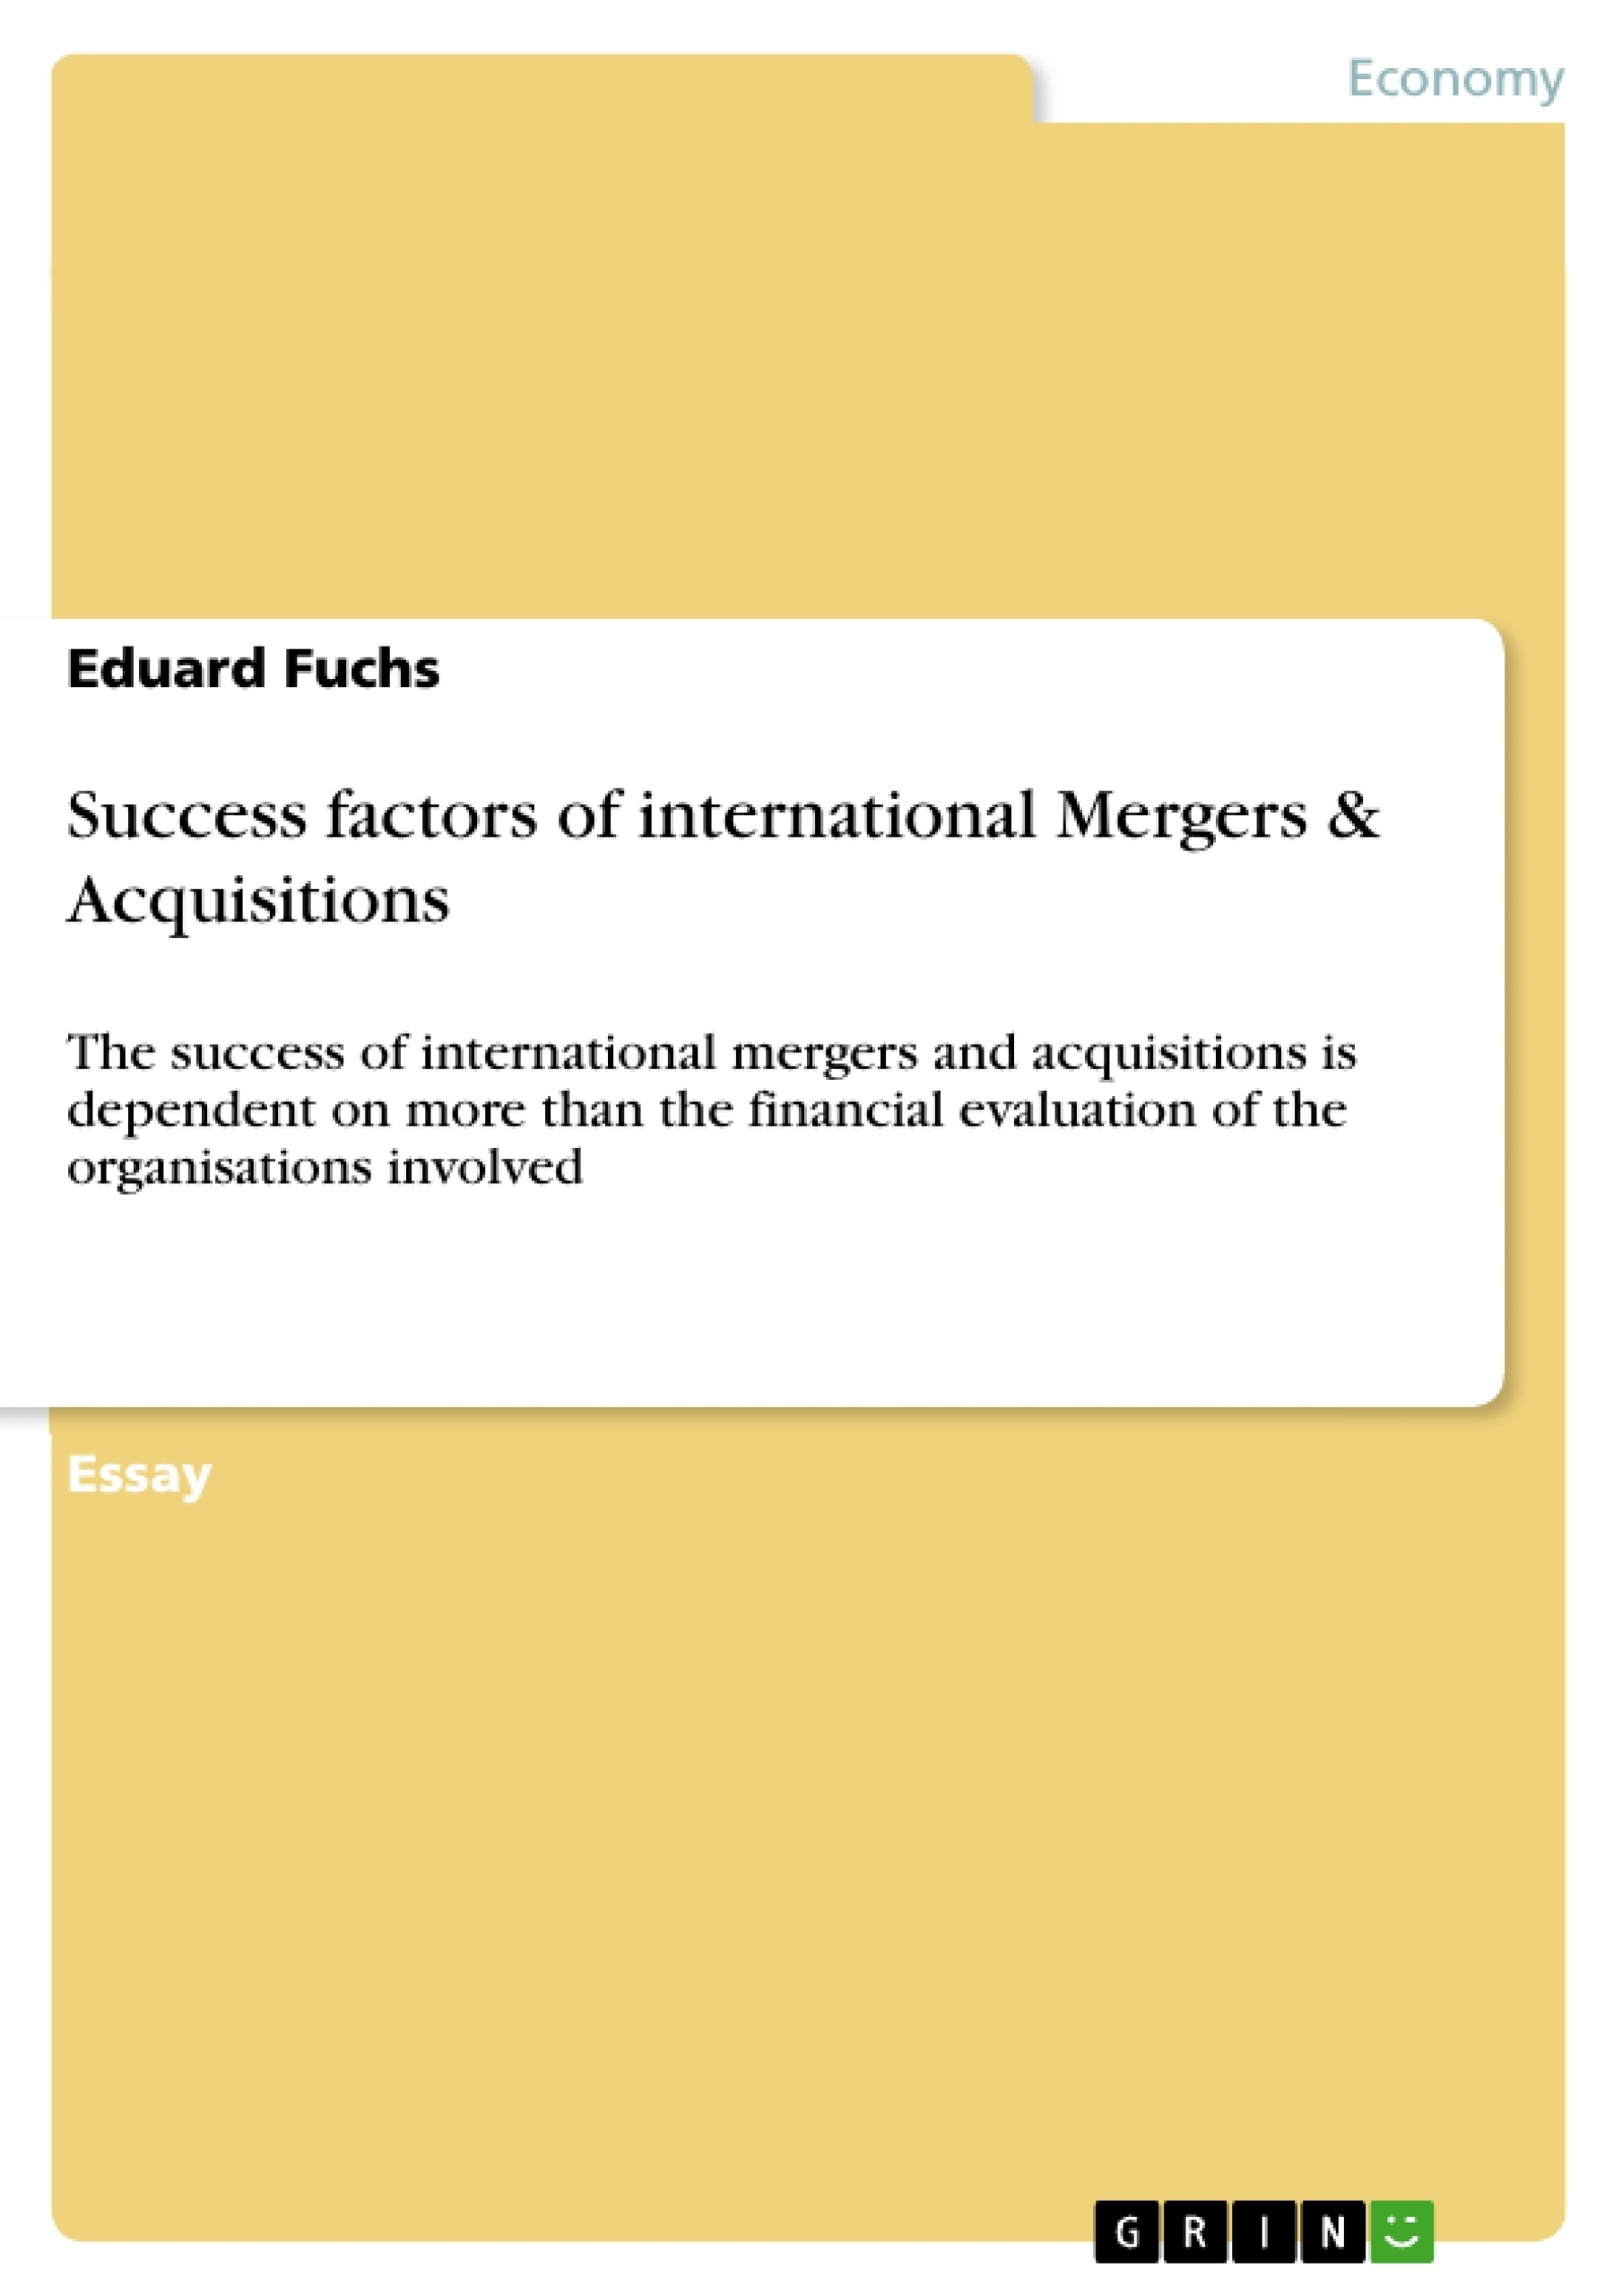 term paper on mergers and acquisitions